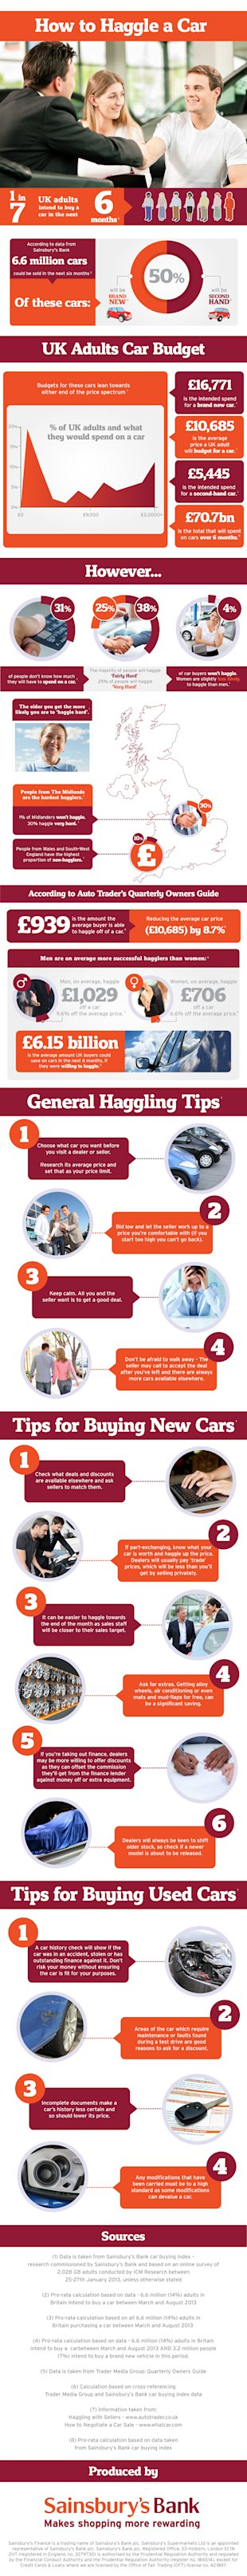 How To Haggle For a Car [Infographic] image how to haggle a car 1